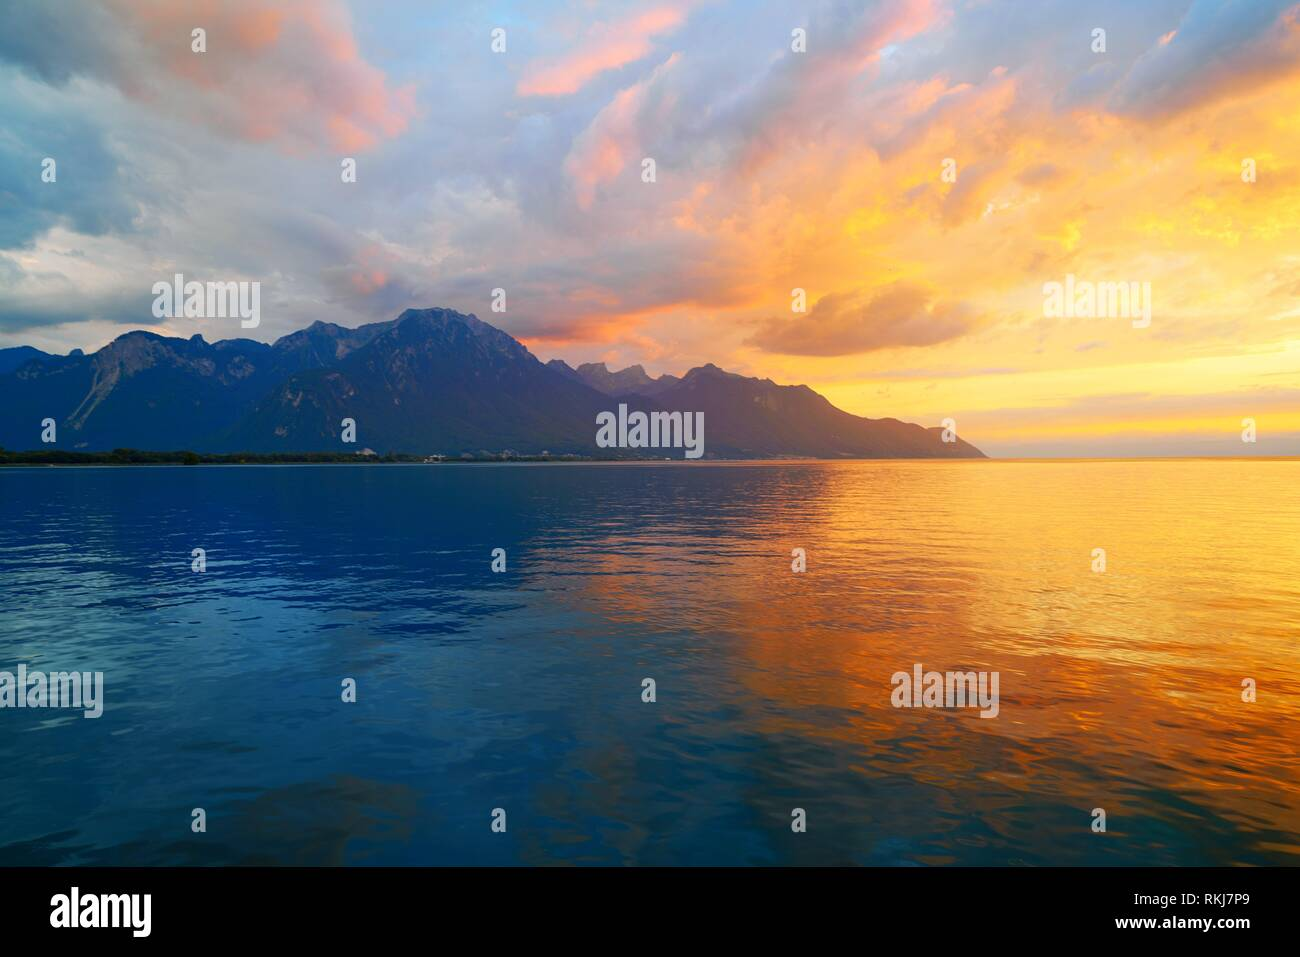 Leman Geneva lake sunset in Switzerland Swiss. - Stock Image